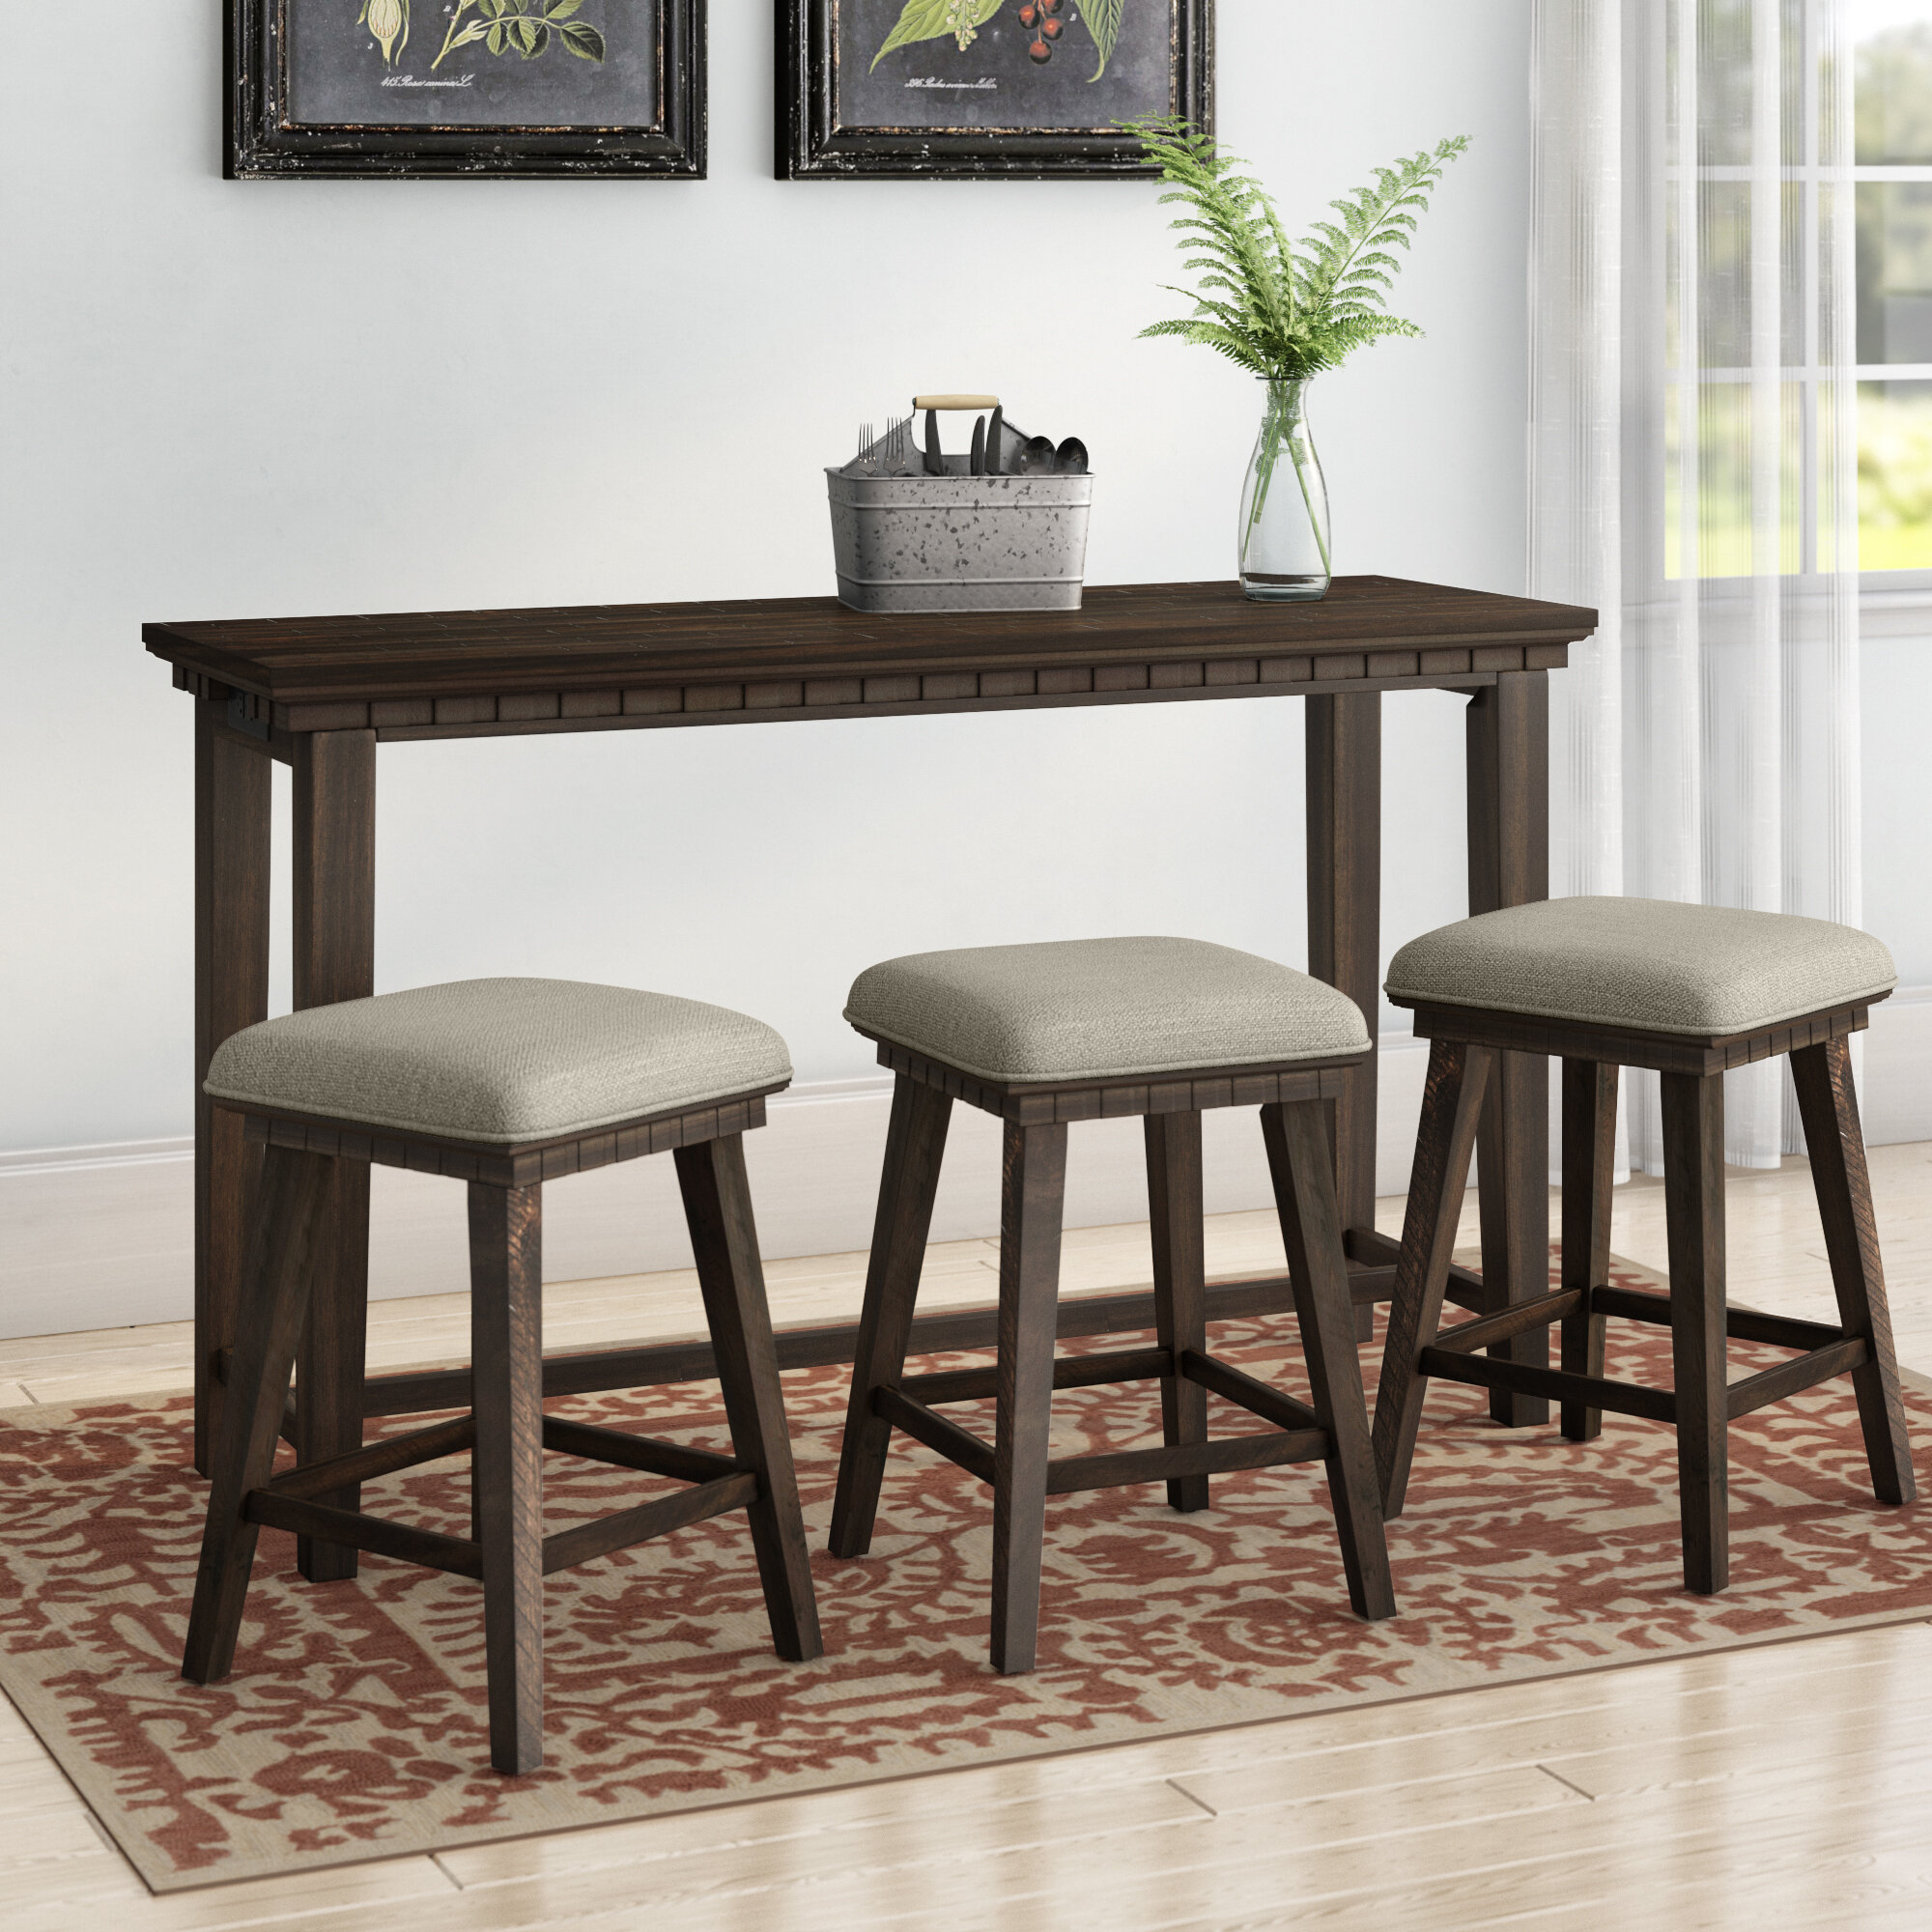 Well Known Laurel Foundry Modern Farmhouse Suzann Multi Purpose 4 Piece Pub Regarding Lillard 3 Piece Breakfast Nook Dining Sets (View 11 of 20)